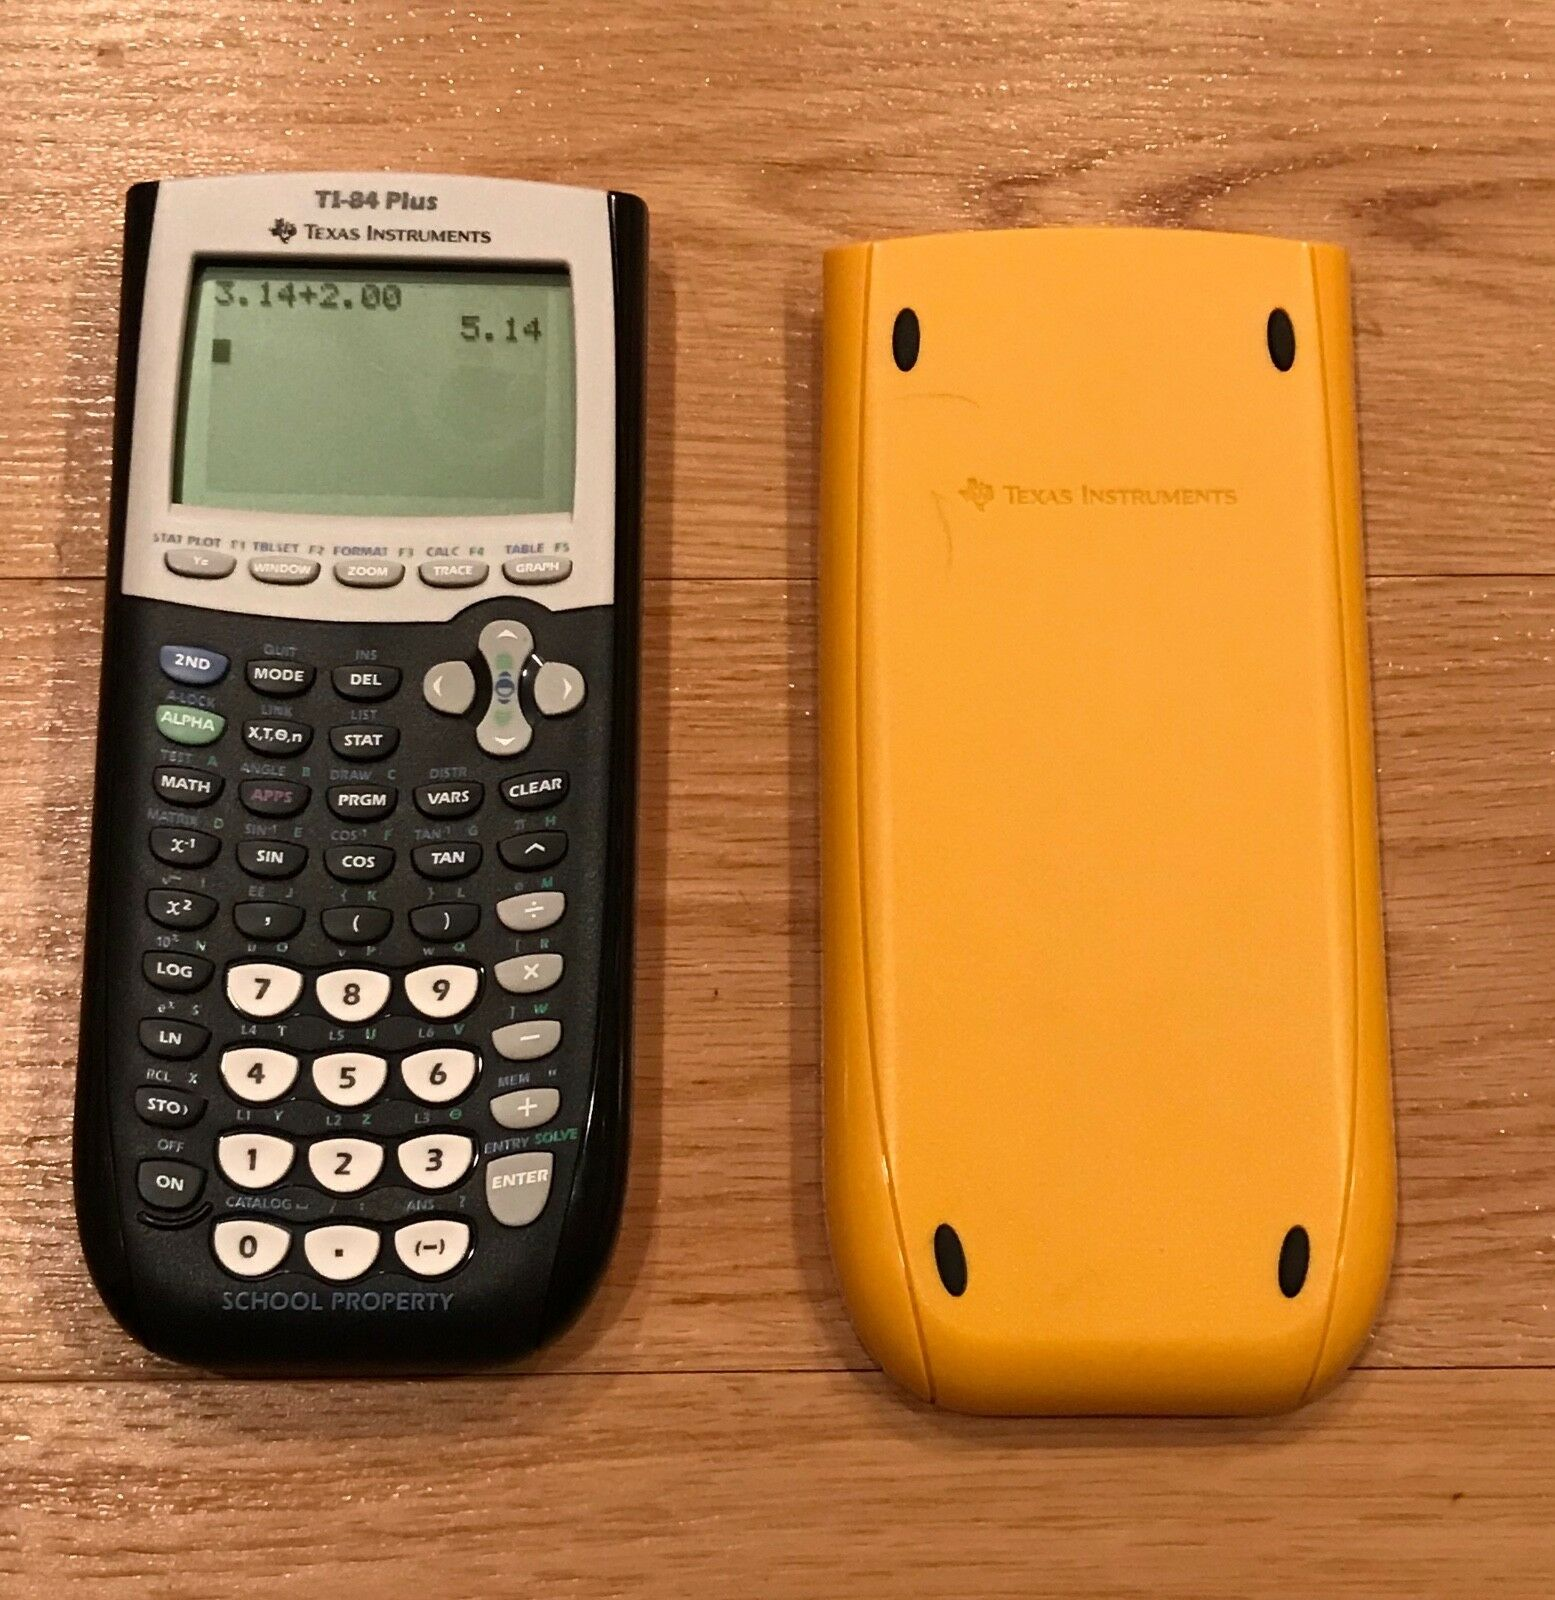 Texas Instruments TI-84 Plus Graphing Calculator School Property Edition Yellow